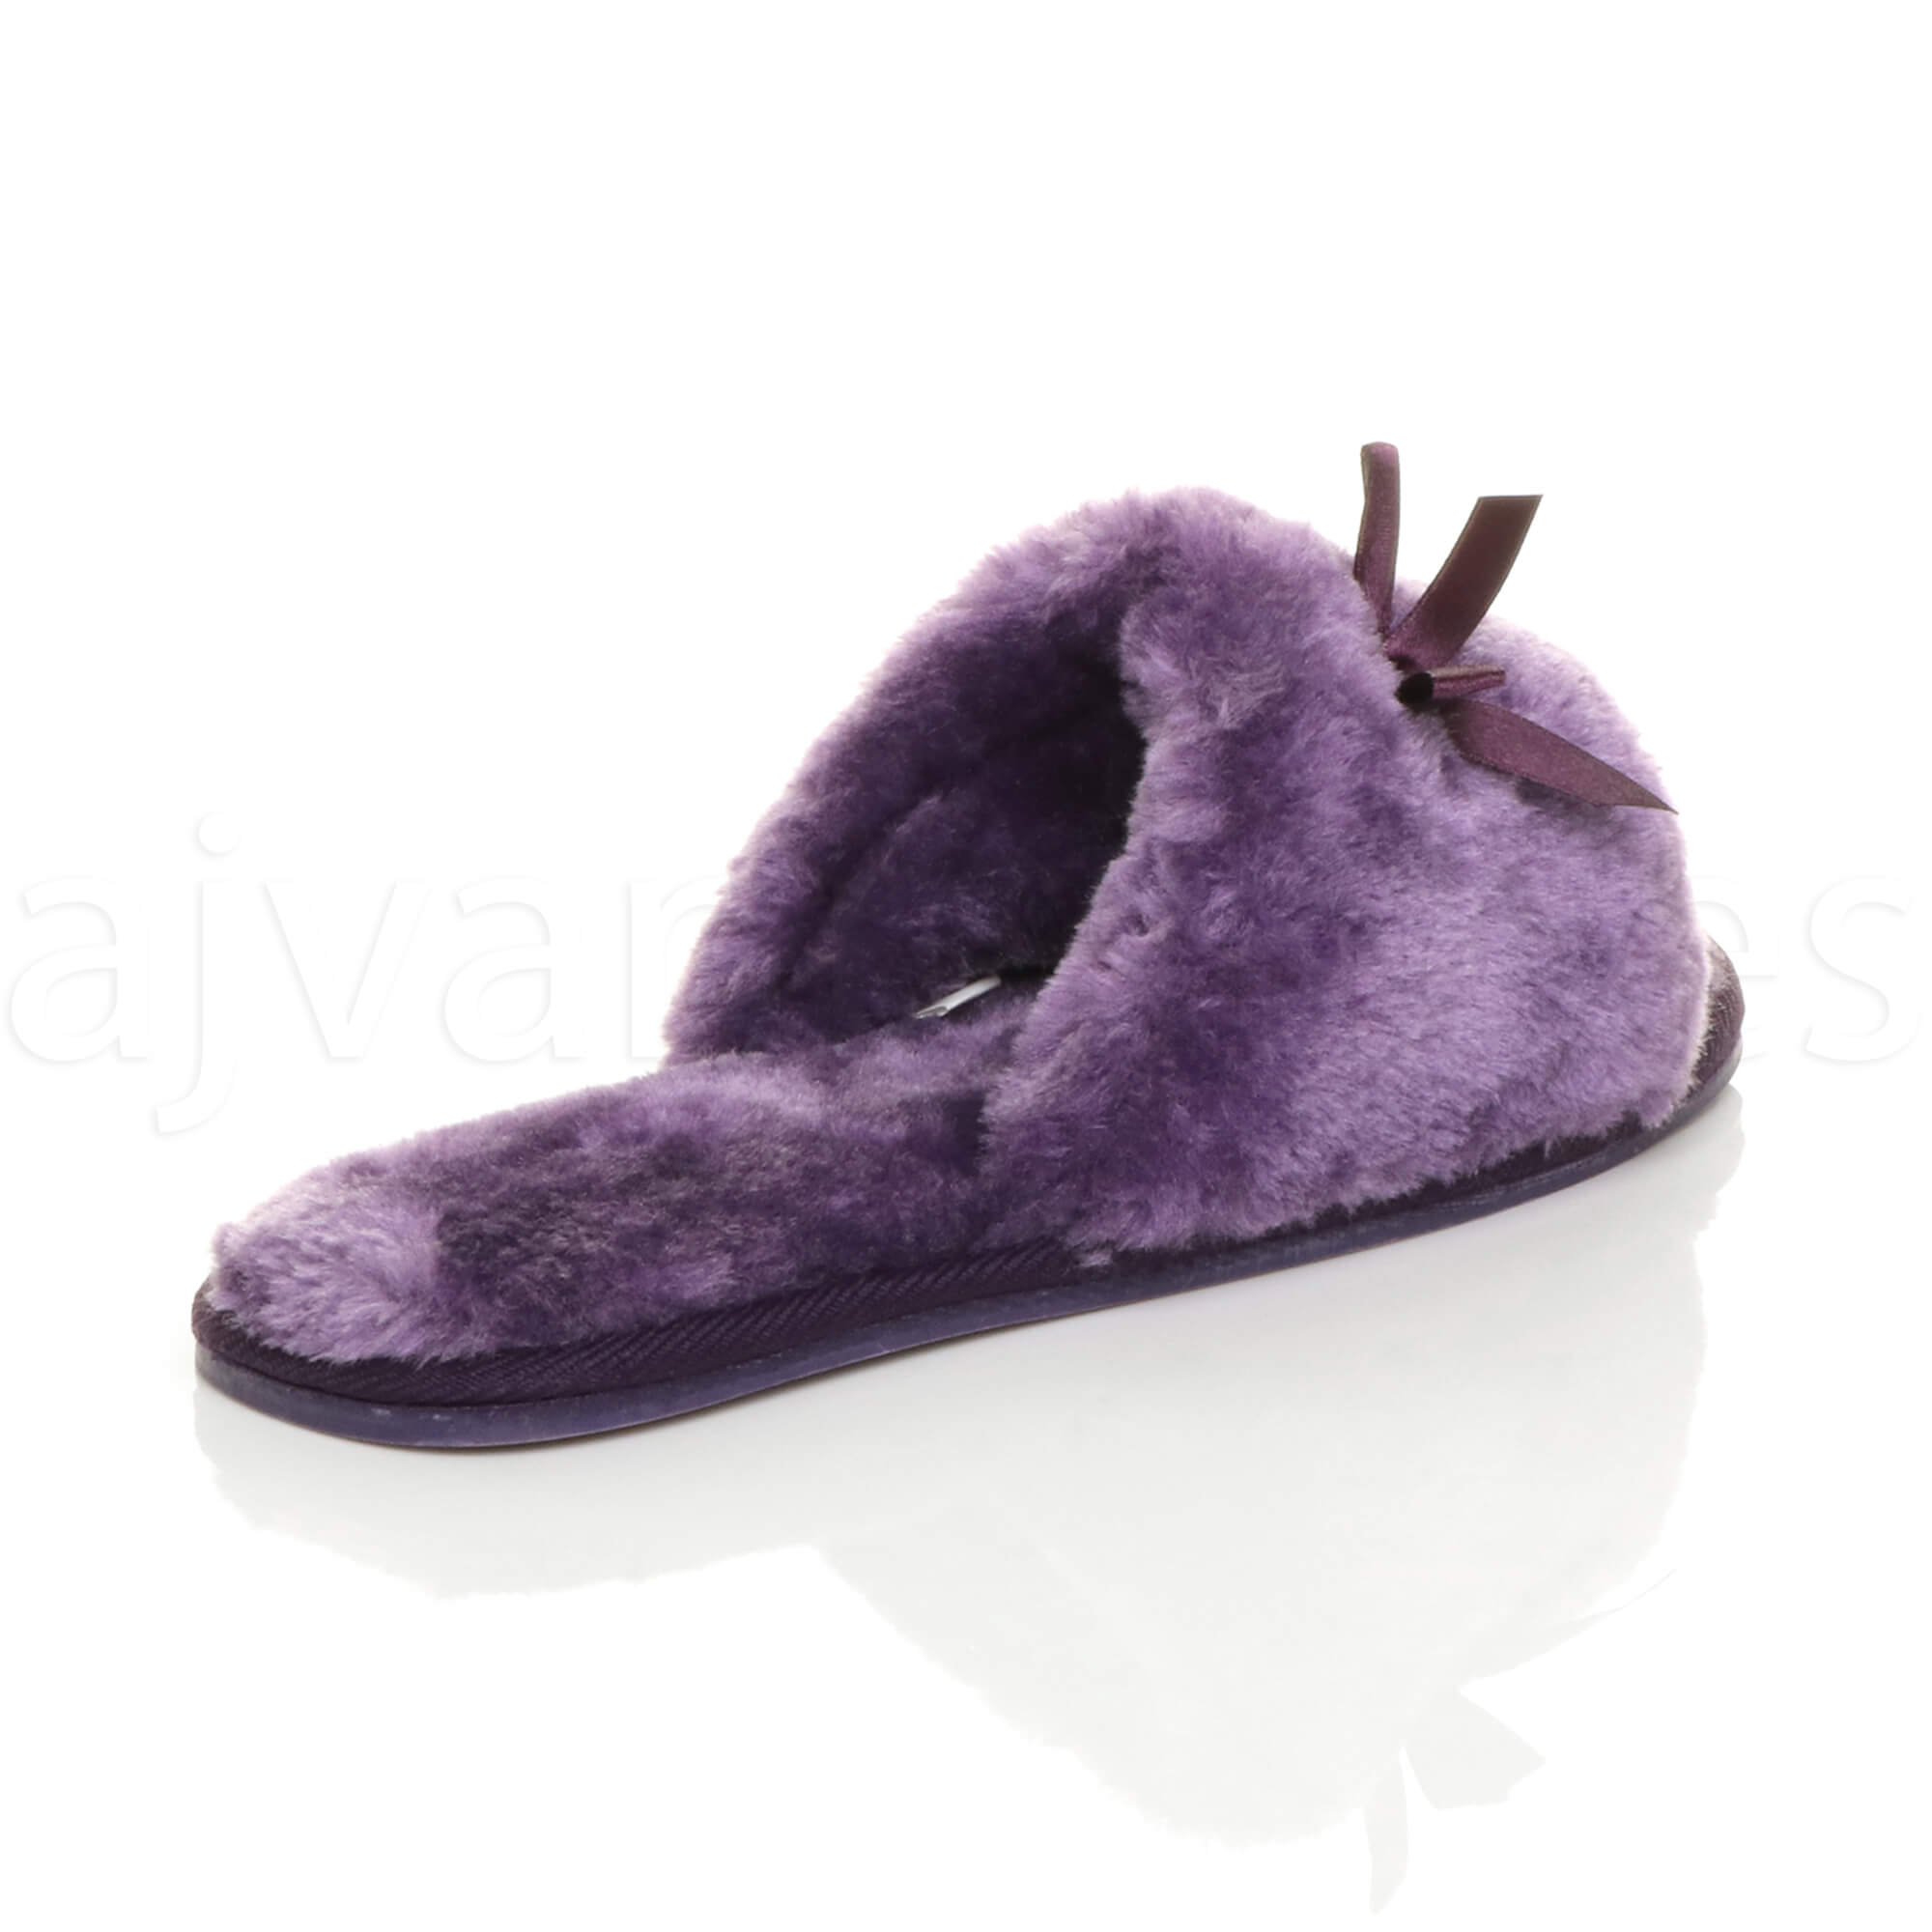 WOMENS-LADIES-FLAT-PEEP-TOE-BOW-LUXURY-COSY-FUR-LINED-SLIP-ON-SLIPPERS-SIZE thumbnail 61